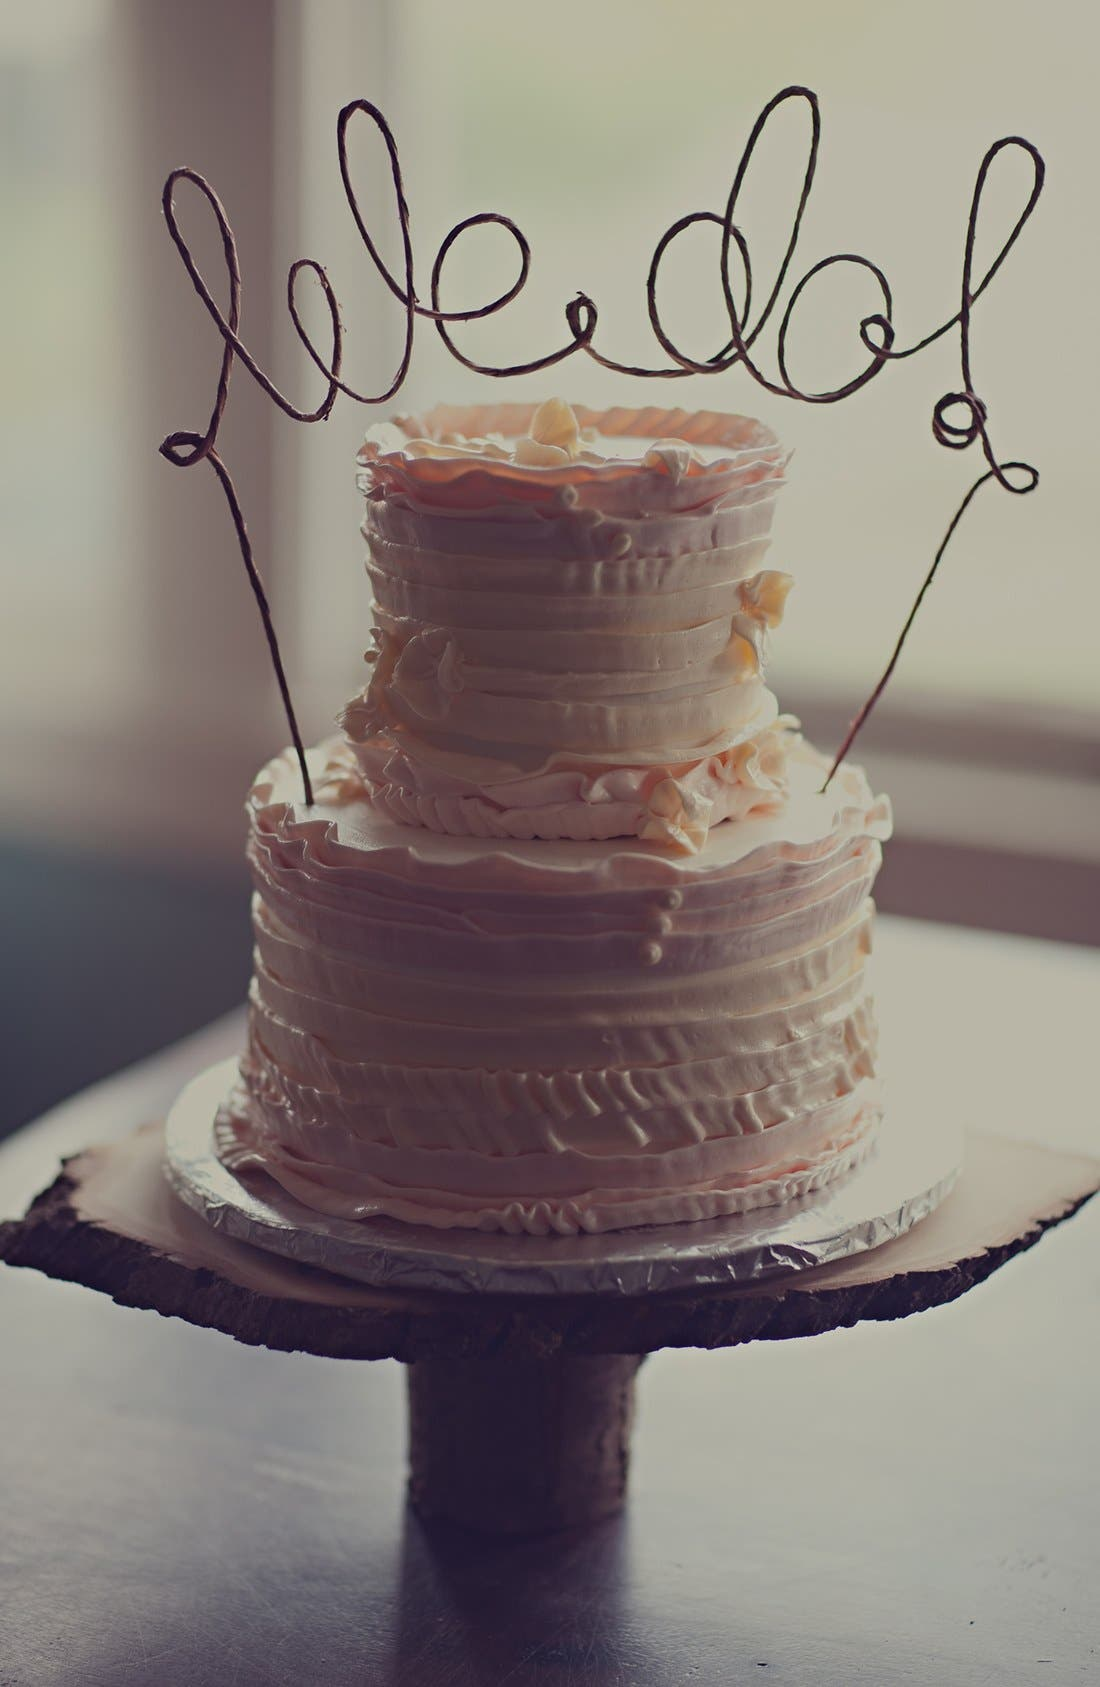 'We Do' Rustic Cake Topper, Main, color, 200